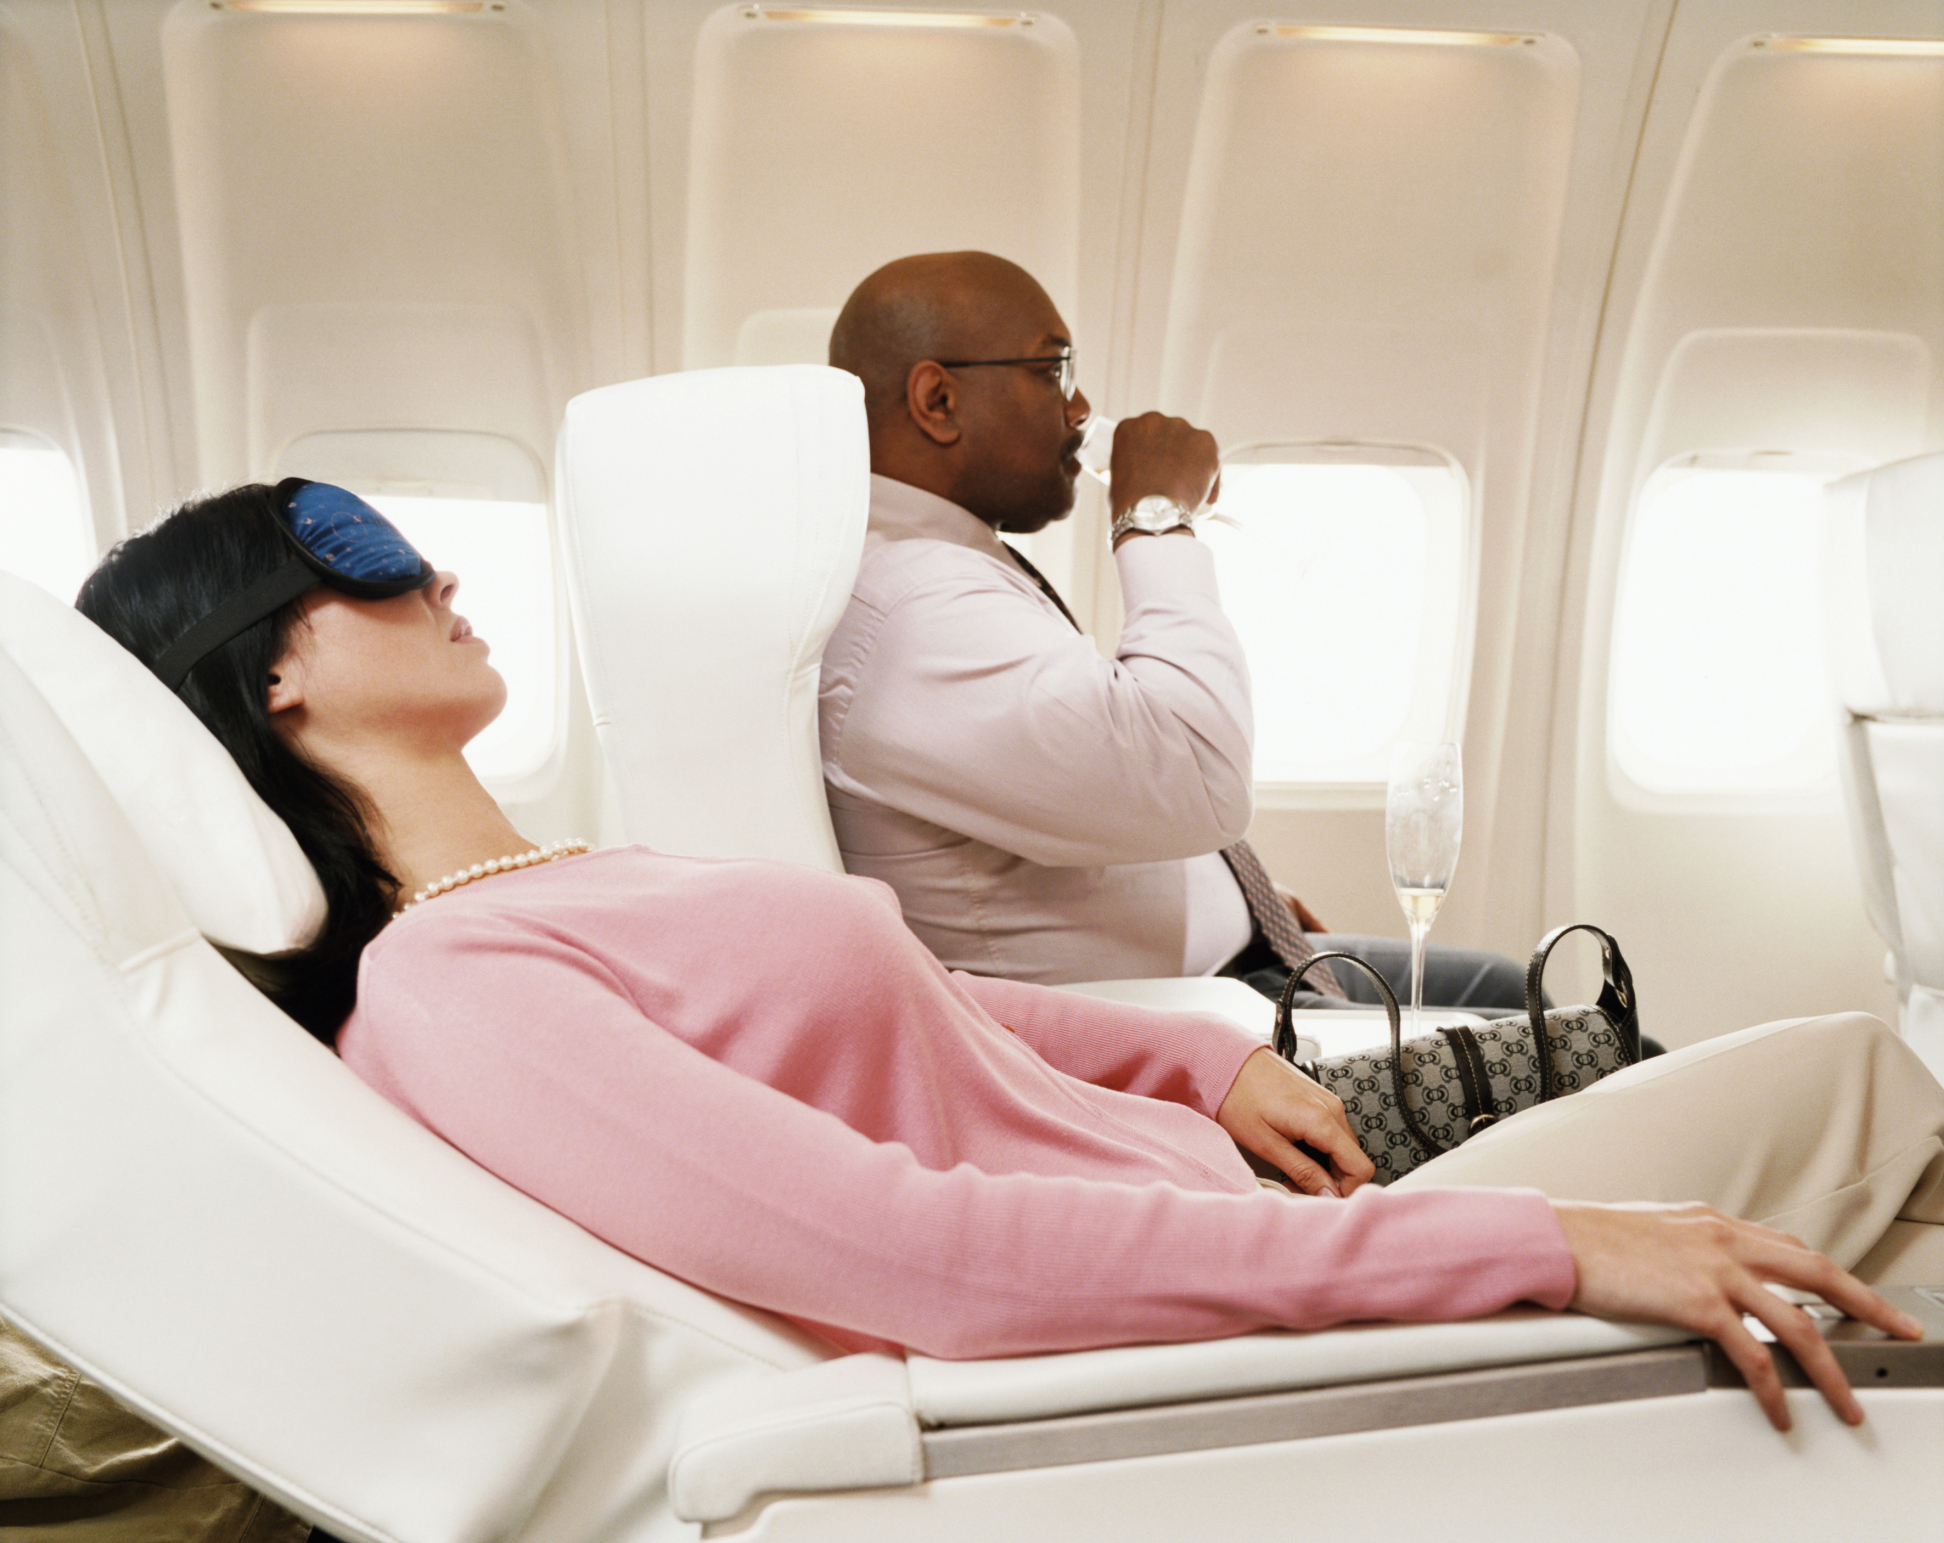 Vitamin C may help you fight off illness during a flight.